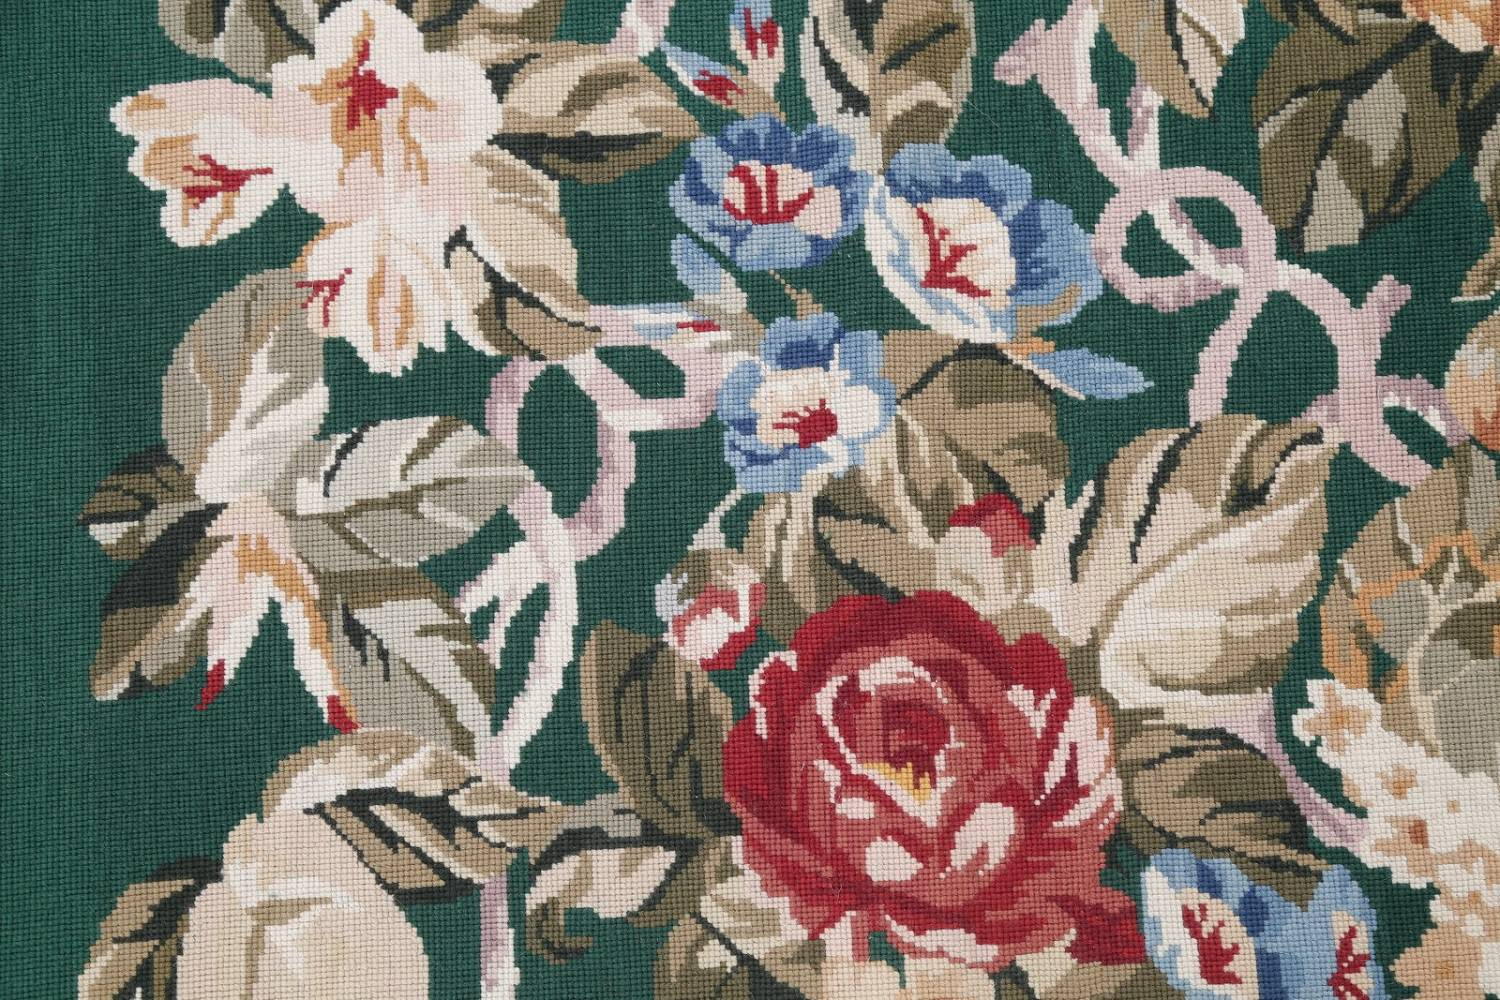 Floral Green Aubusson Chinese Oriental Hand-Woven Area Rug Wool 6x9 image 9